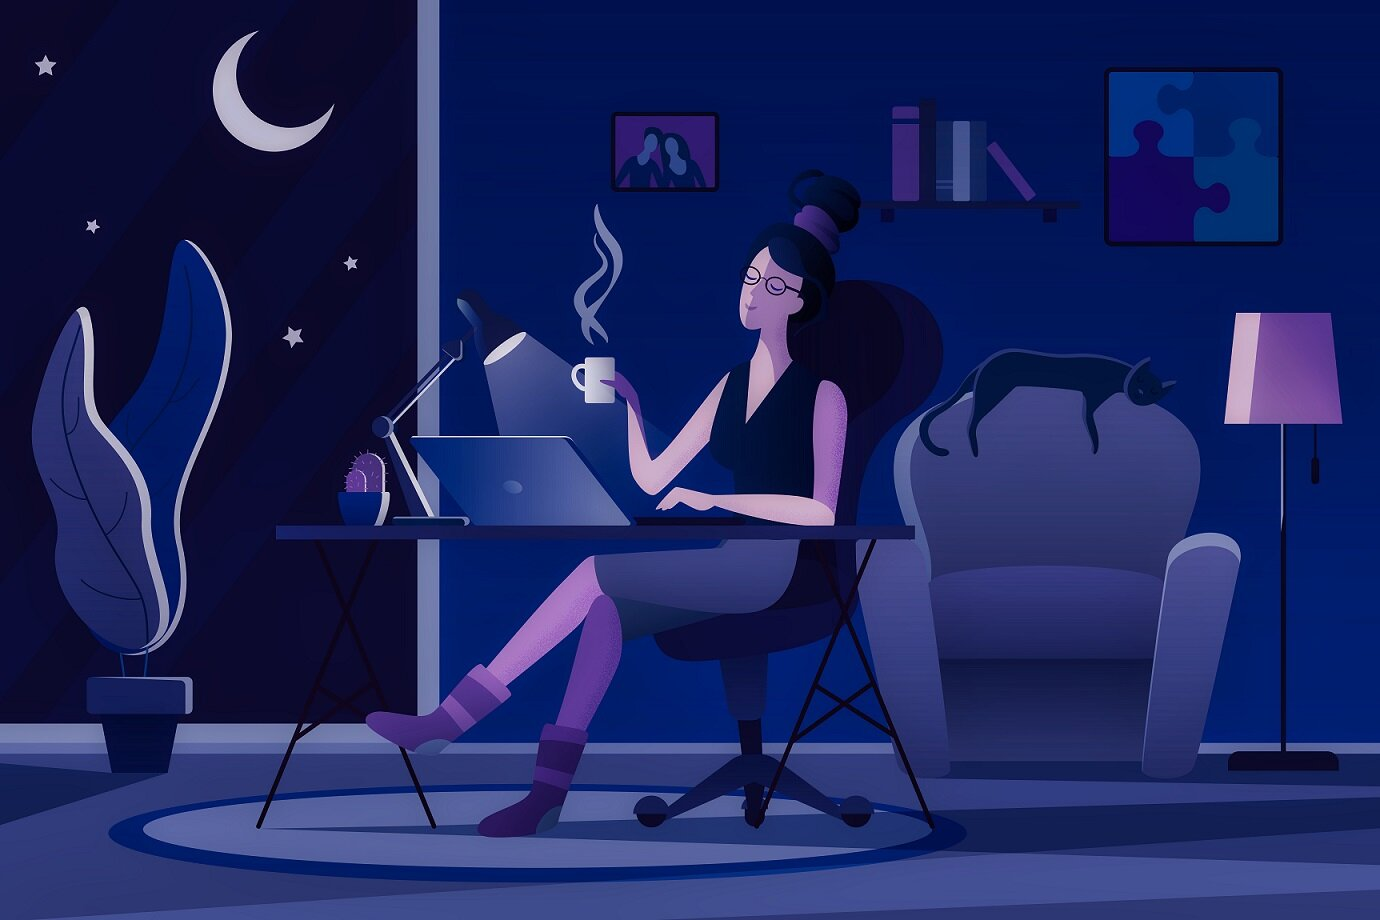 Night owl burning the midnight oil - Image Credit: Lemberg Vector studio via Shutterstock / HDR tune by Universal-Sci